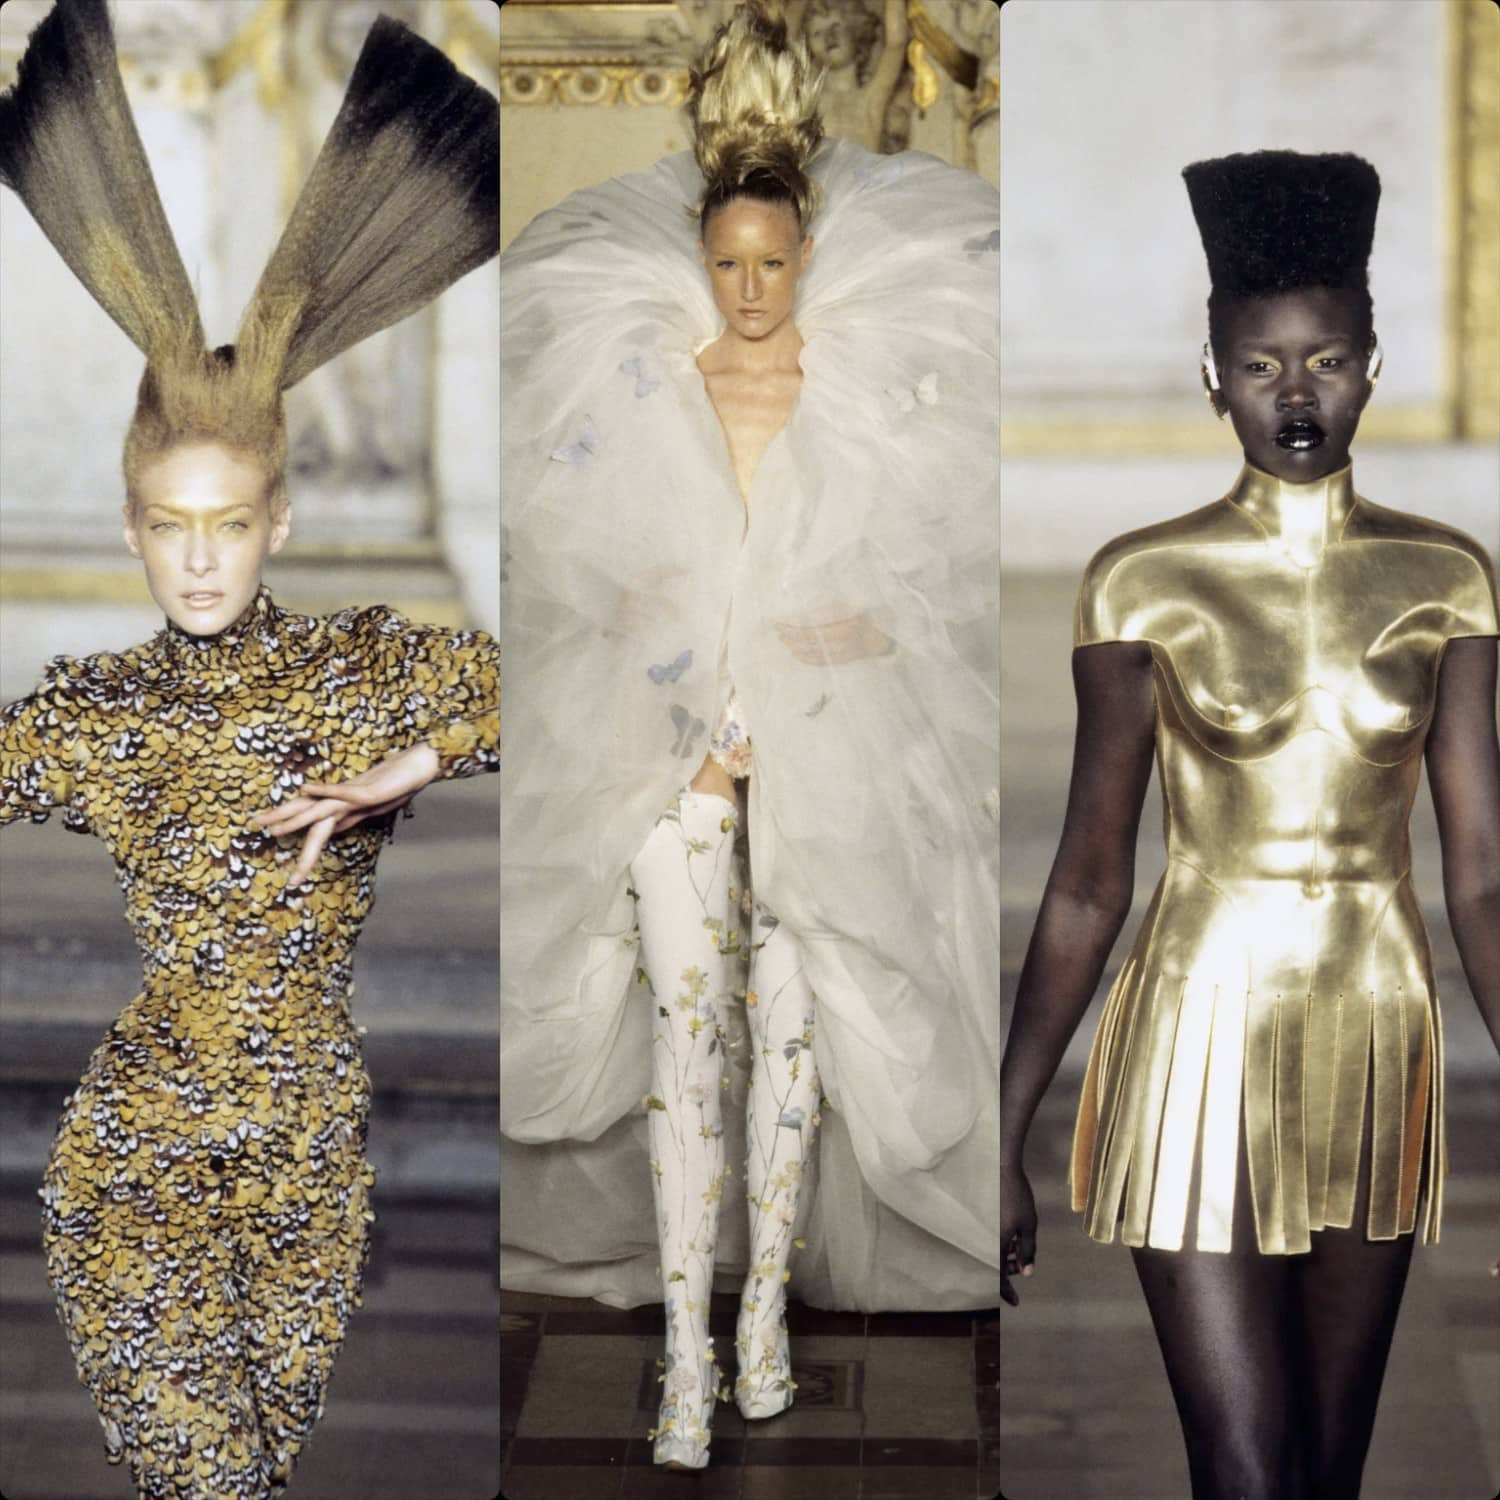 Givenchy by Alexander McQueen Haute Couture Spring Summer 1997. RUNWAY MAGAZINE ® Collections. RUNWAY NOW / RUNWAY NEW